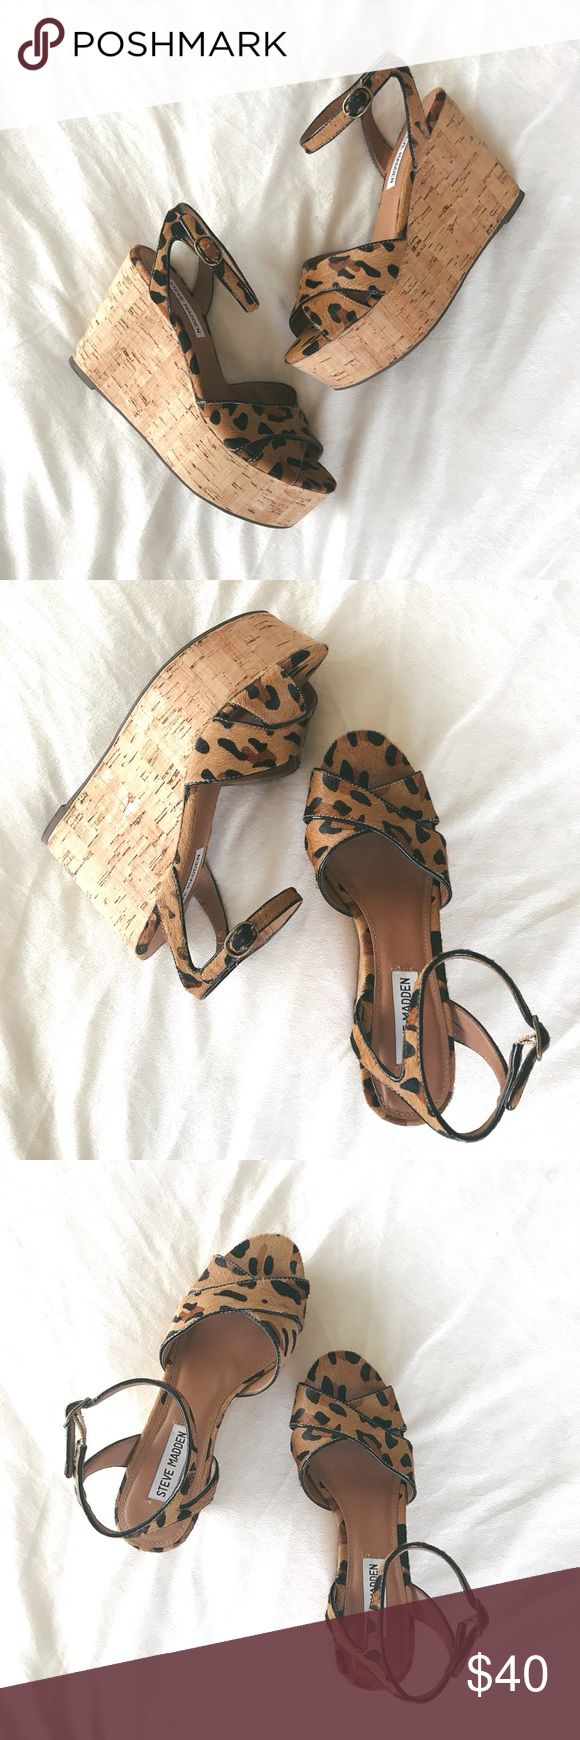 """Steve Madden™️ Leopard Print Wedges Adorable leopard print wedges! 4"""" wedge heel. Leather. Excellent preloved condition. Ships within 48 hours of purchase. Steve Madden Shoes Wedges"""